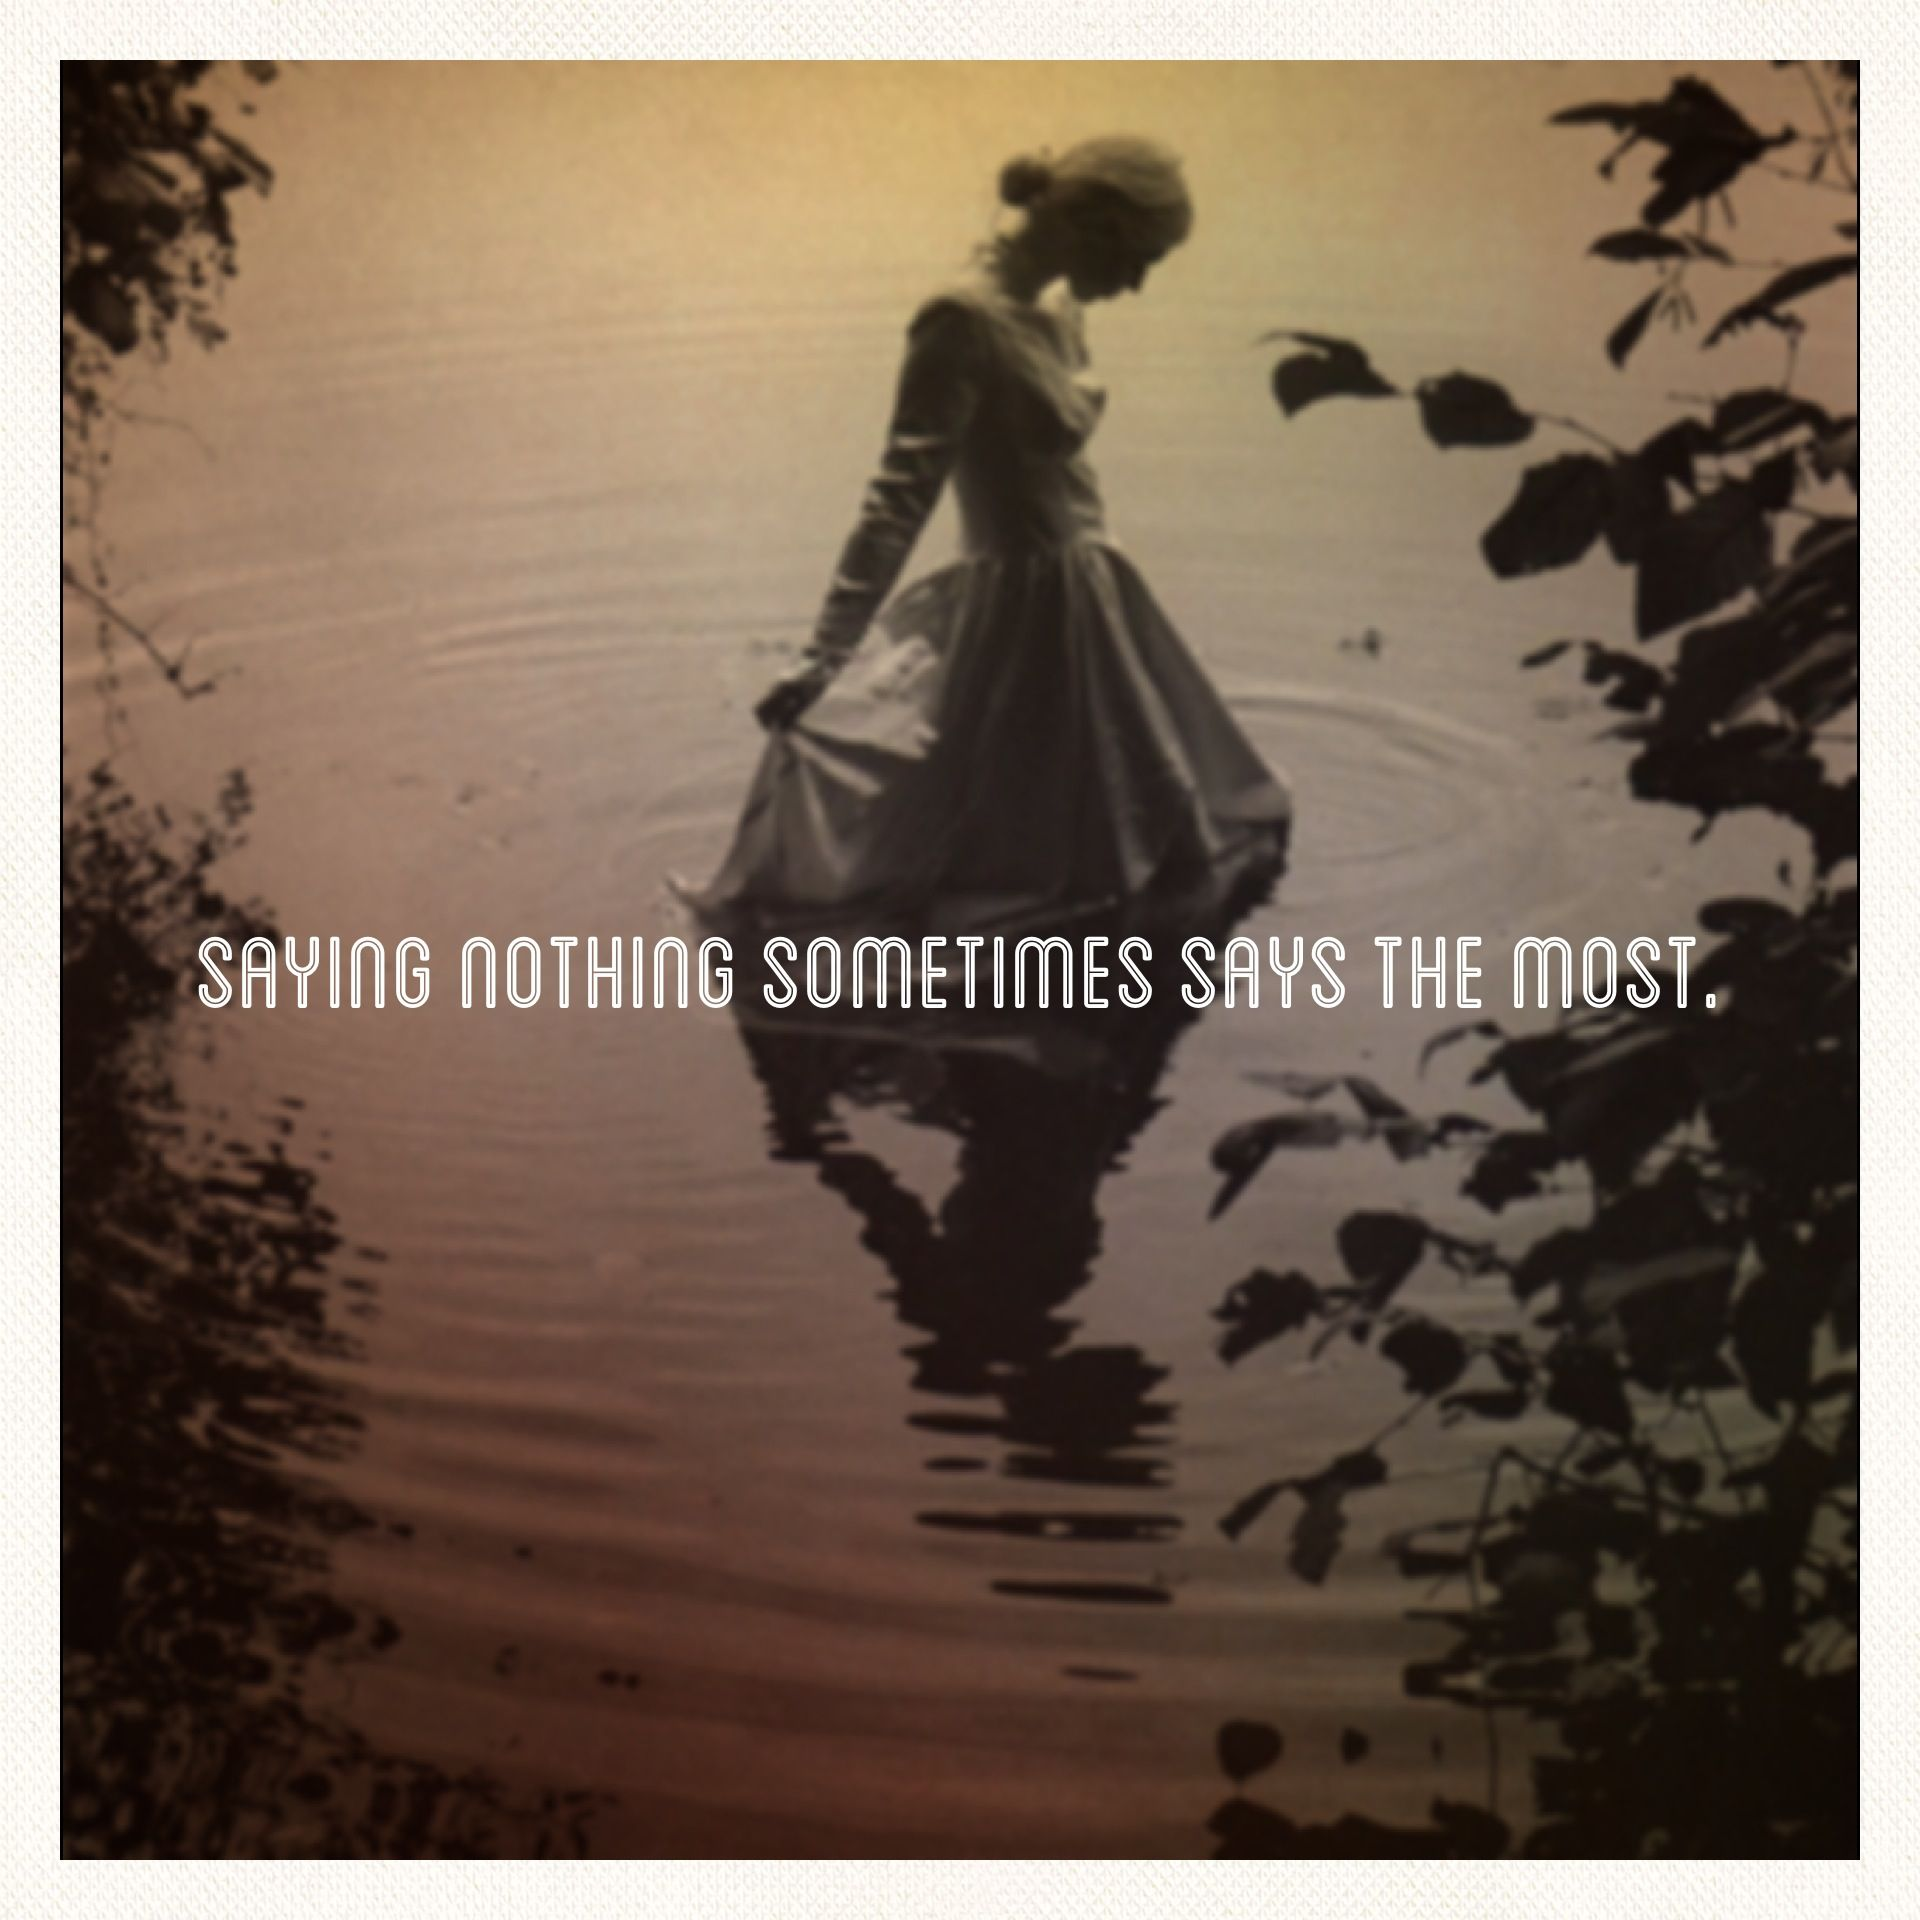 saying nothing sometimes says the most by emily